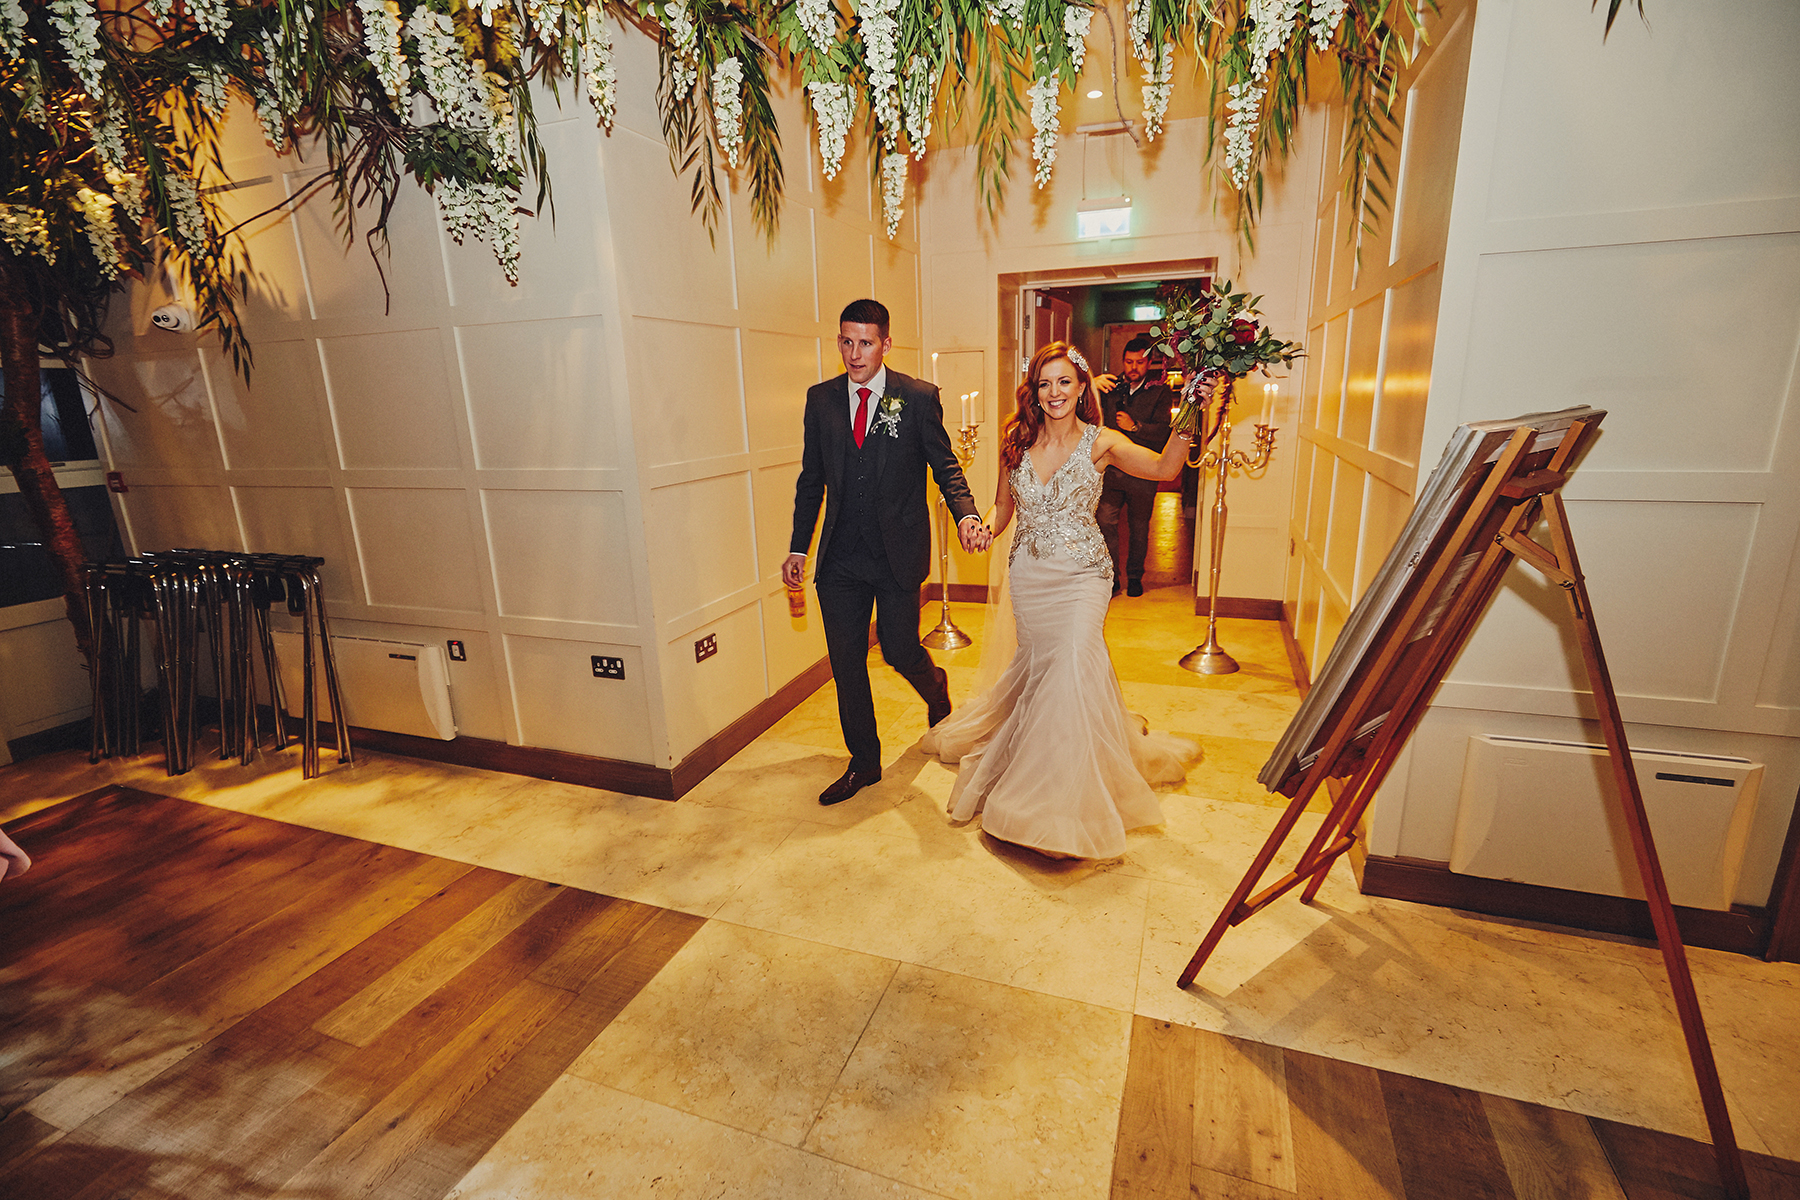 The Maryborough Hotel Cork Wedding photos